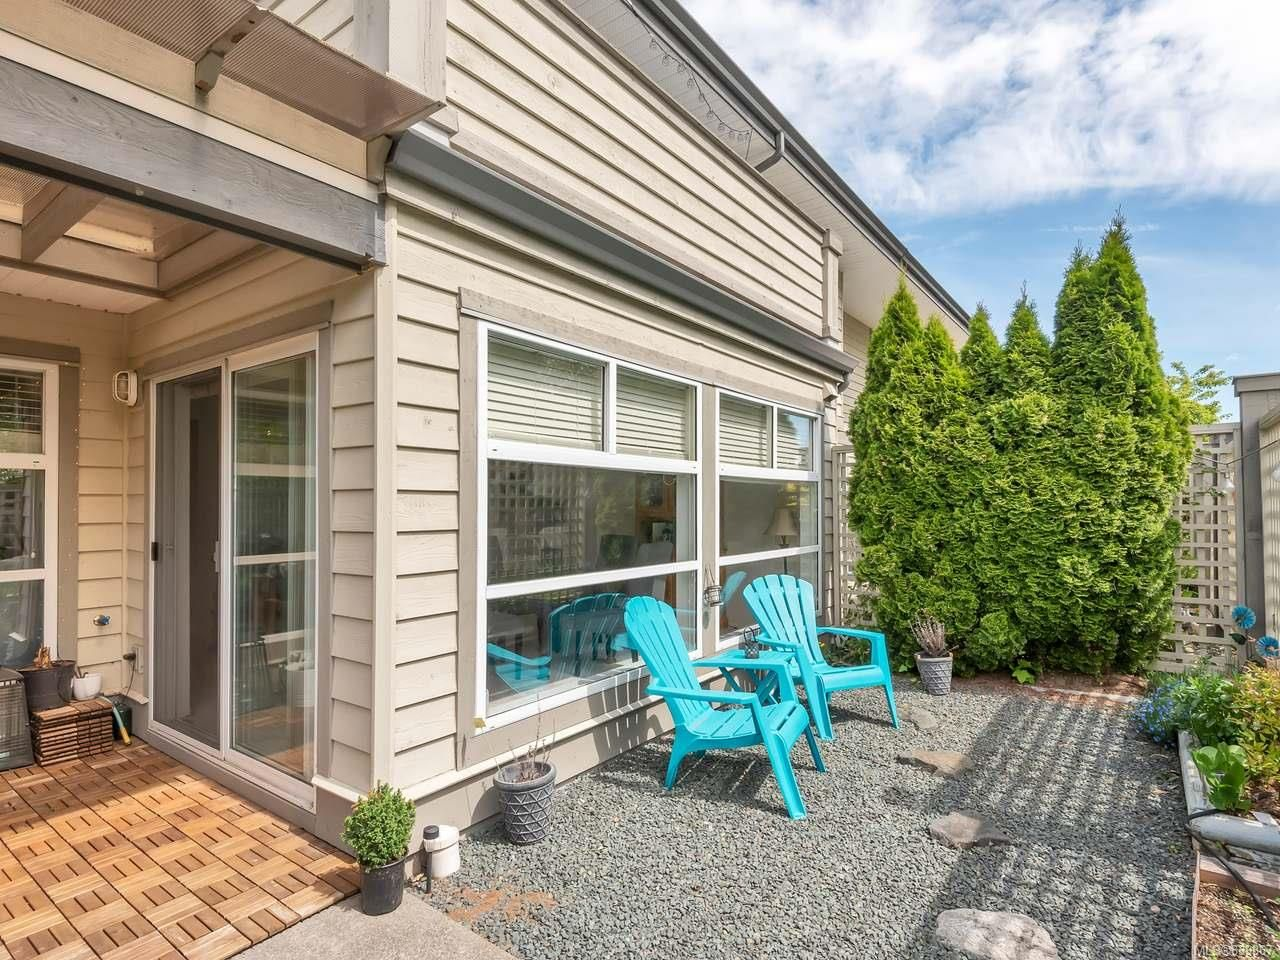 Photo 40: Photos: 21 2750 Denman St in CAMPBELL RIVER: CR Willow Point Row/Townhouse for sale (Campbell River)  : MLS®# 839867